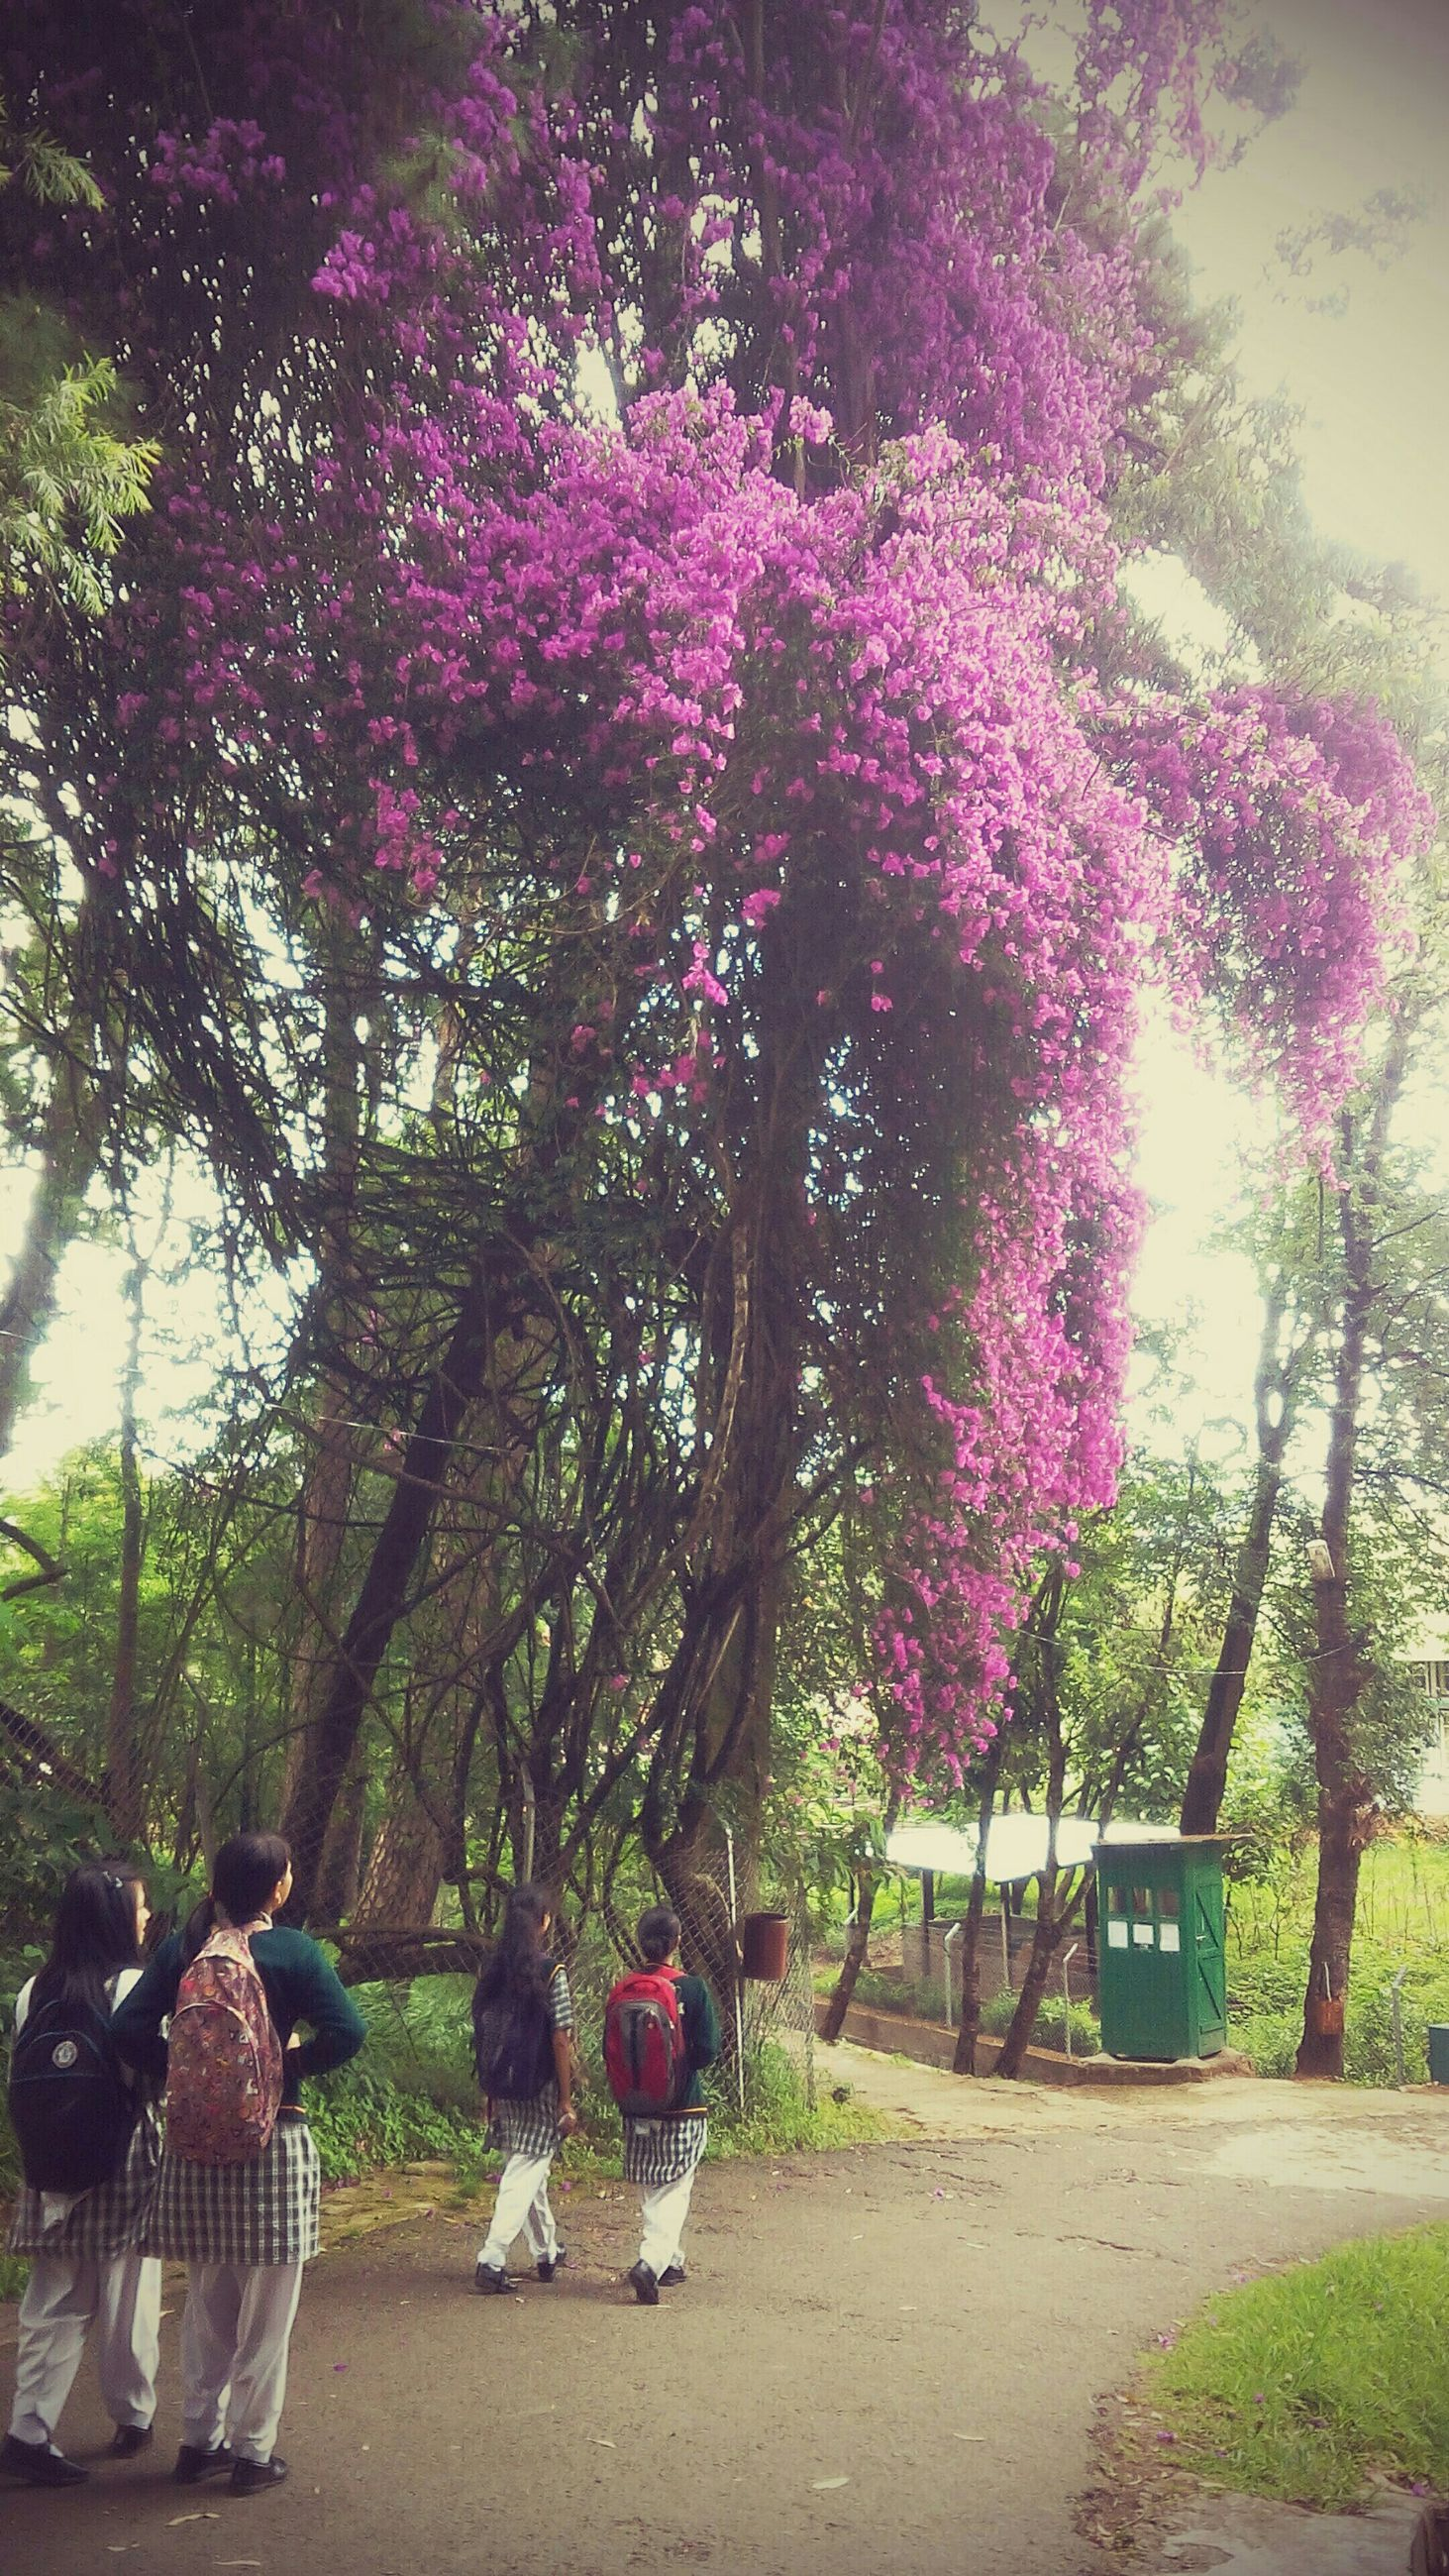 tree, growth, park - man made space, nature, flower, bench, beauty in nature, sunlight, leisure activity, plant, person, footpath, tree trunk, outdoors, lifestyles, park, day, branch, tranquility